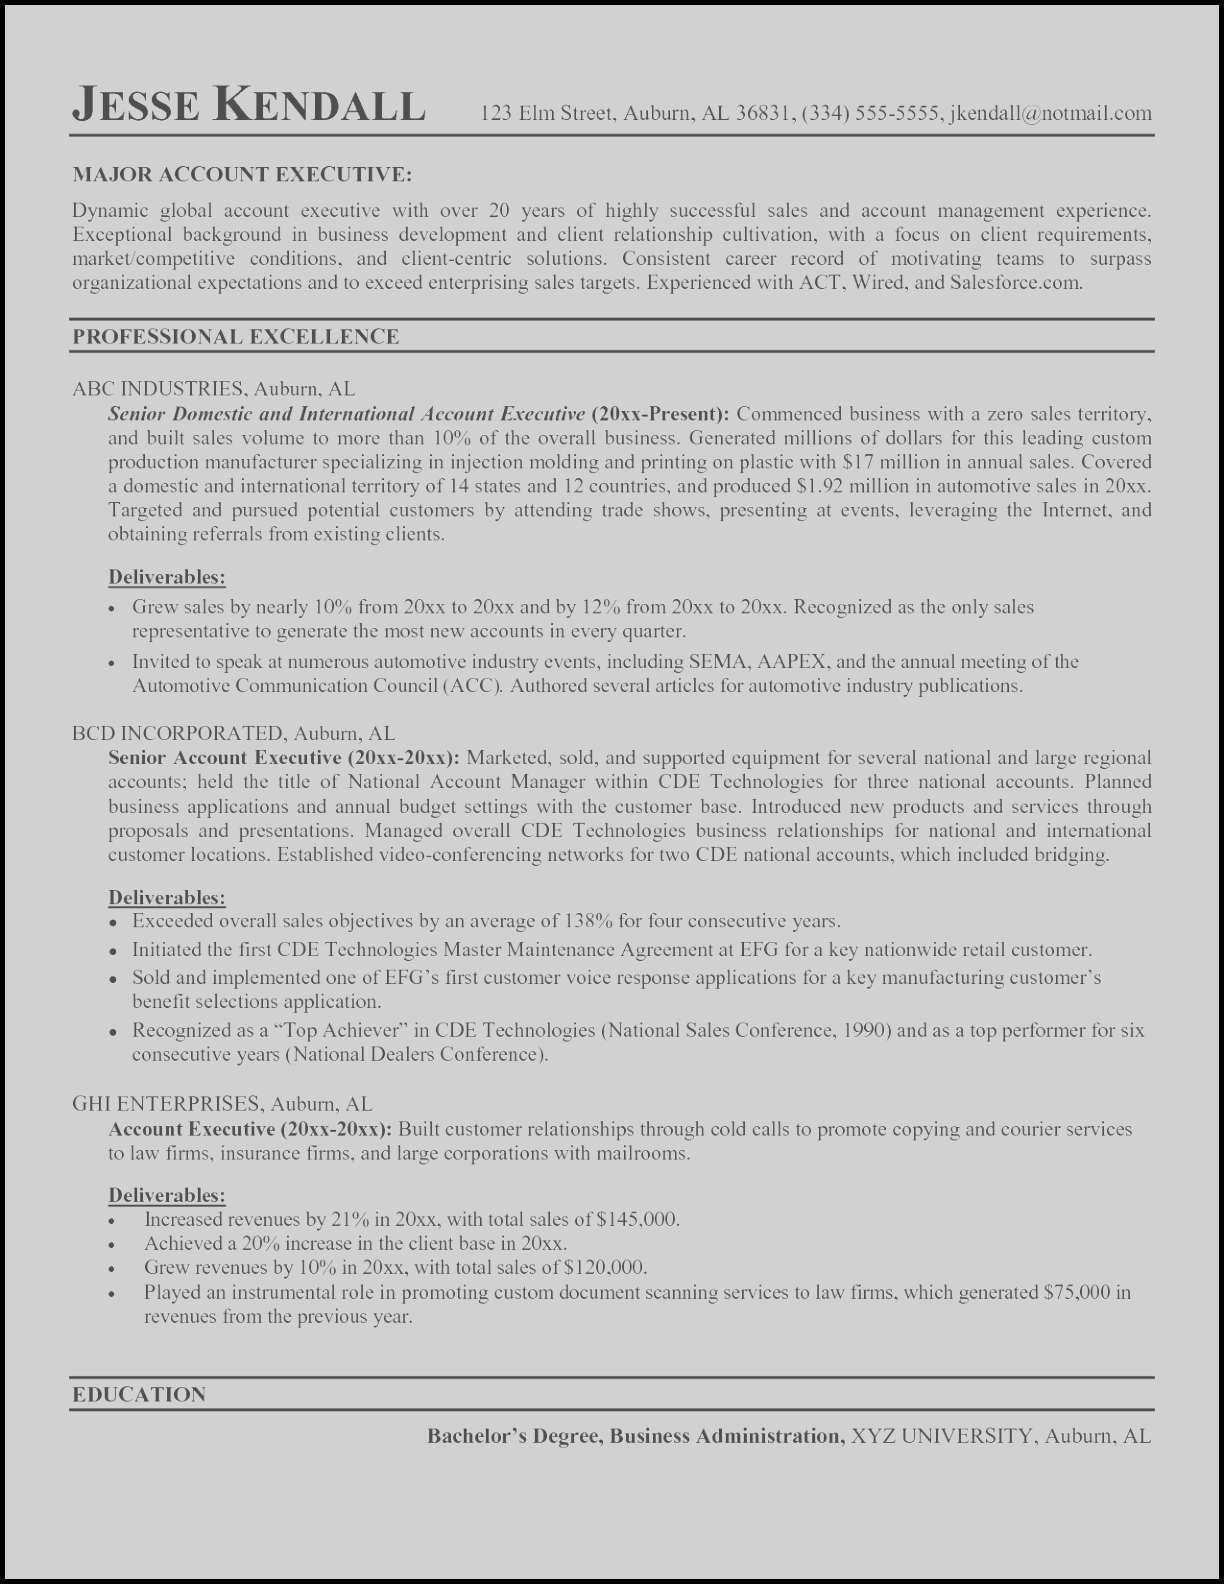 Management Resumes Resume Template for Management New Painter Resume